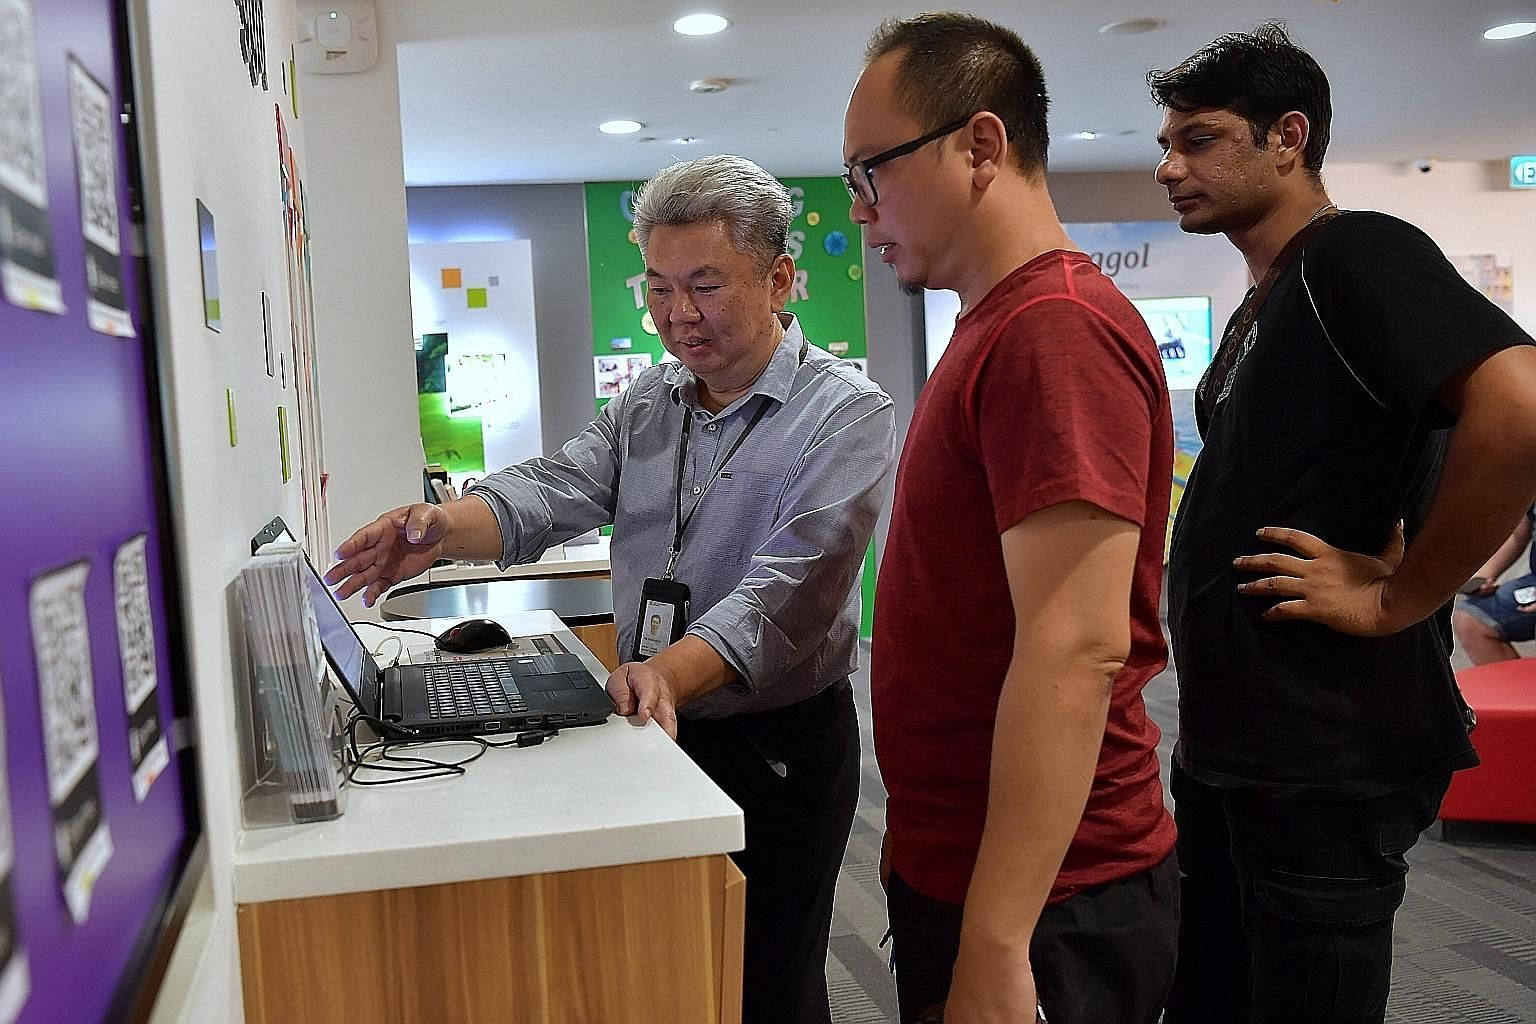 Service ambassador Ng Thiam Hock (left), 60, guides customers through electronic transactions and attends to their inquiries at the HDB Punggol branch office. Having upskilled to take on different roles, he is among the first batch of public officers